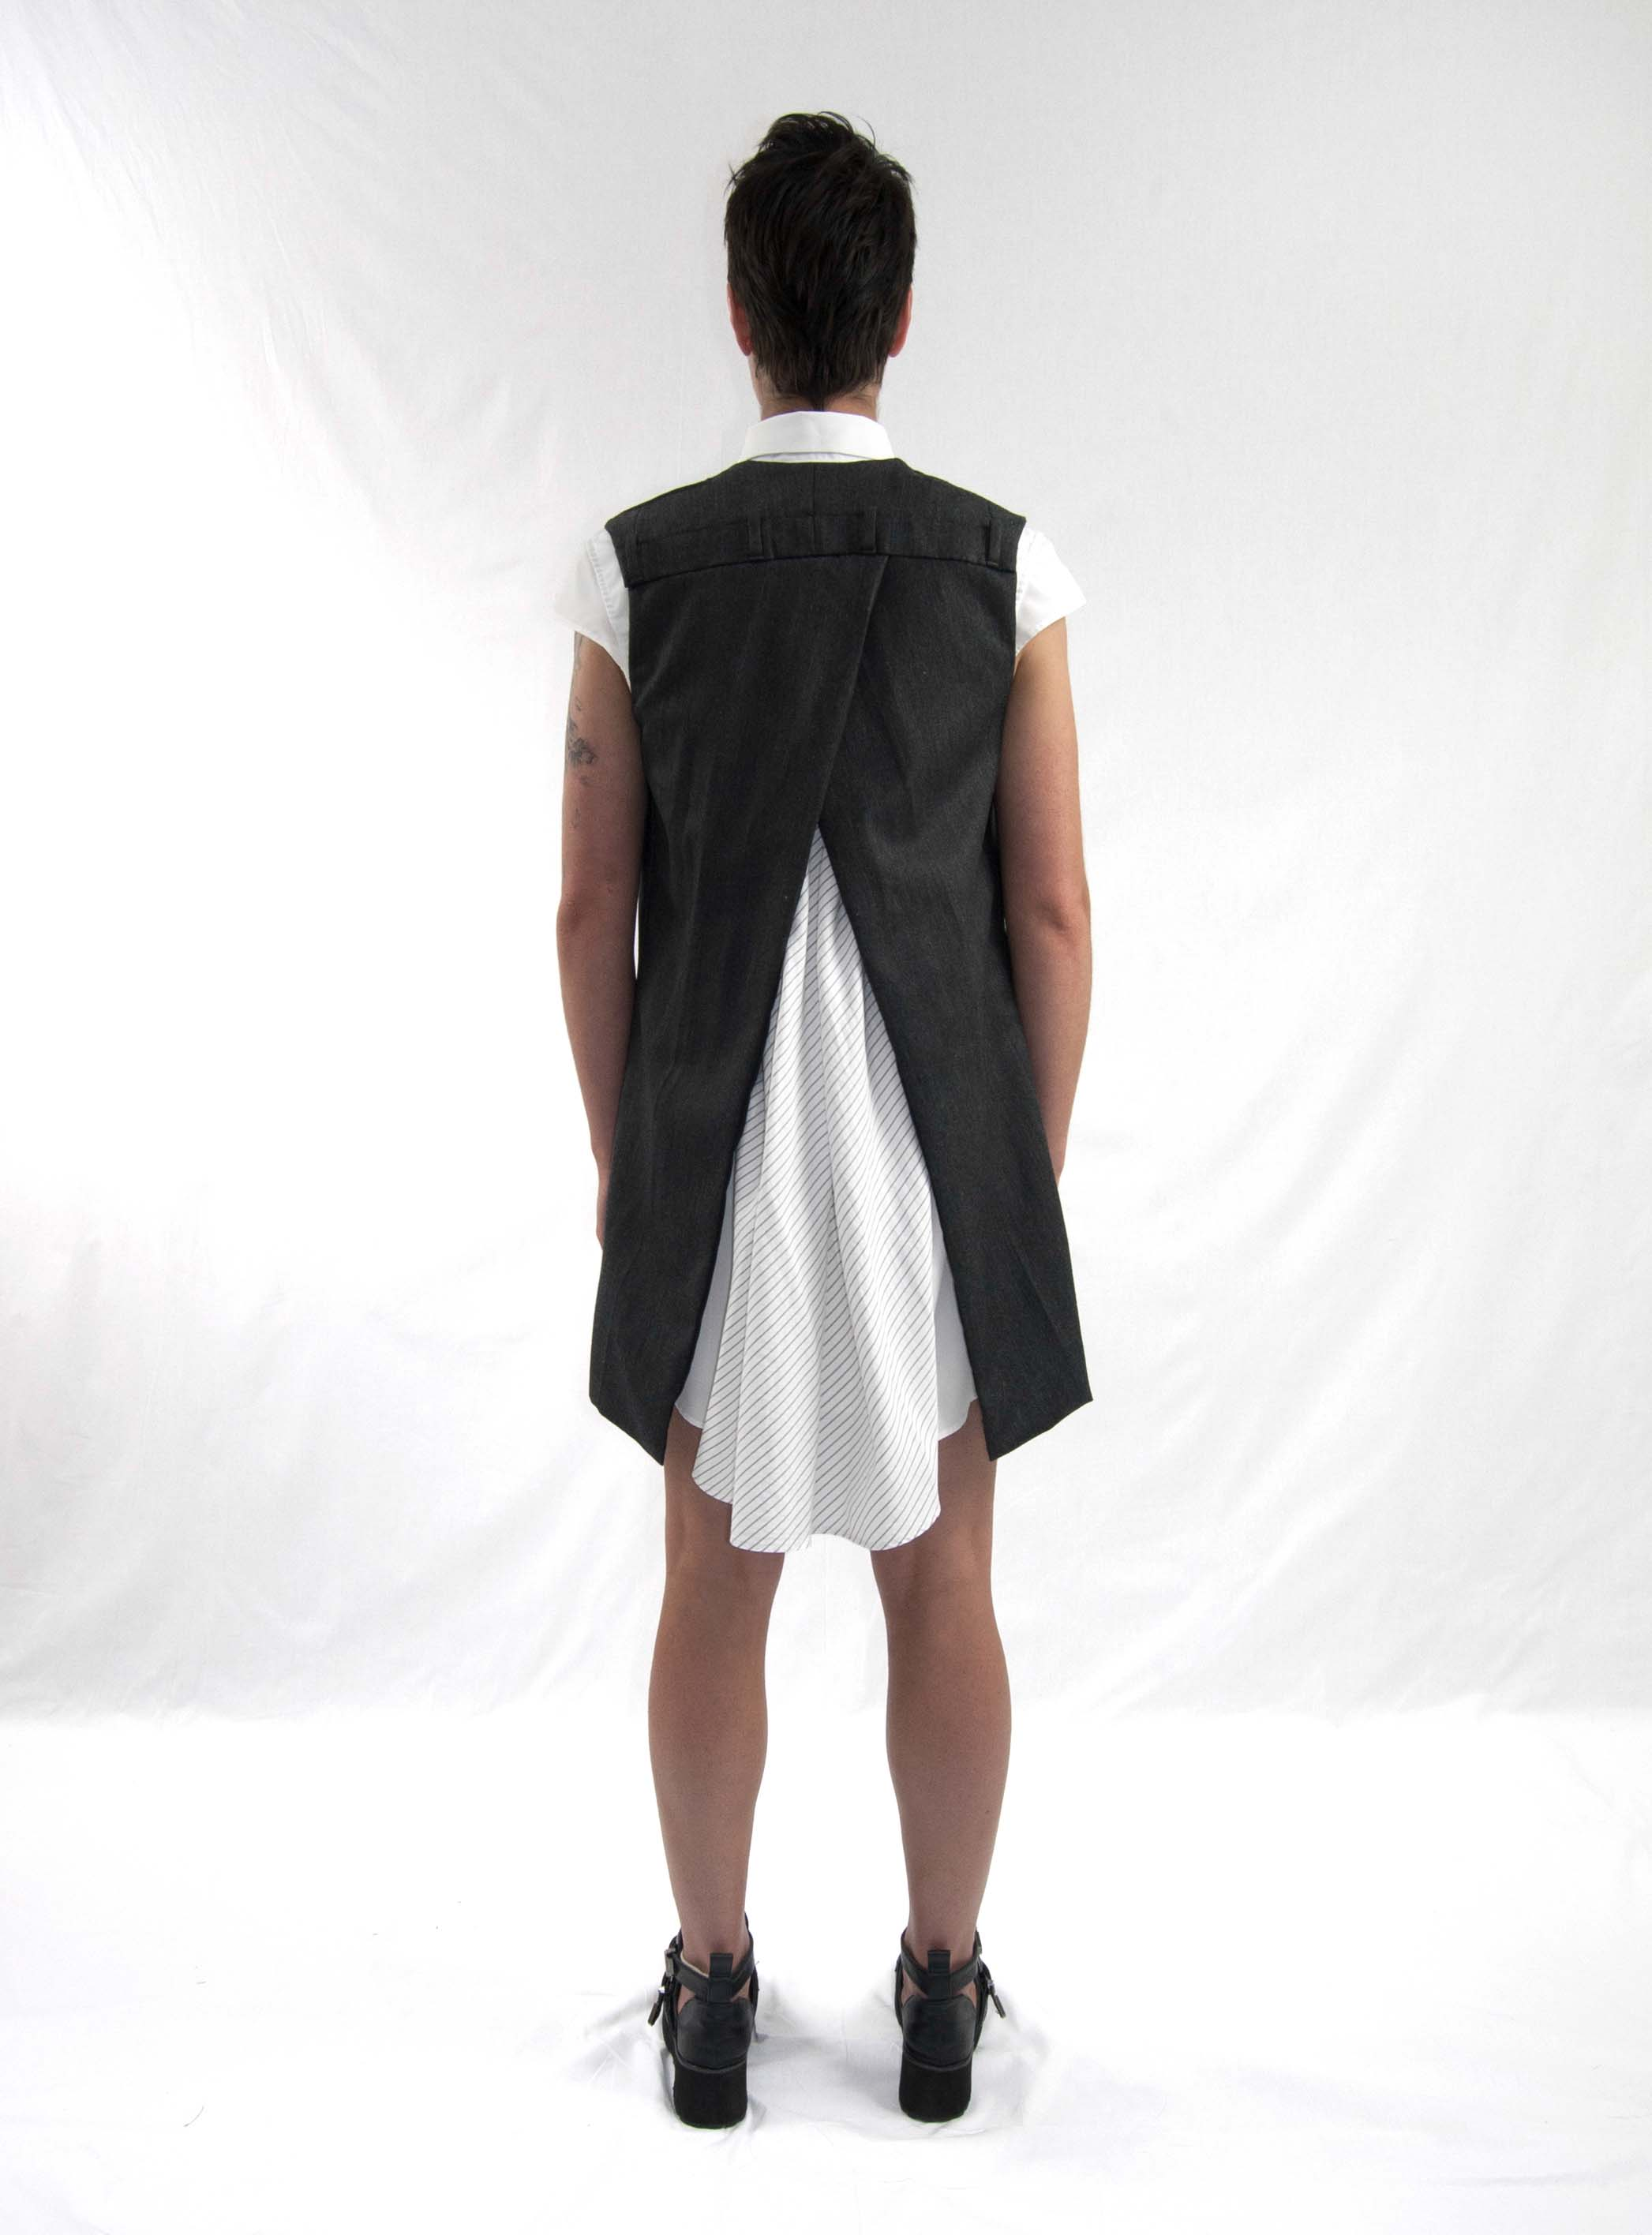 12division gilet, emergence dress bk